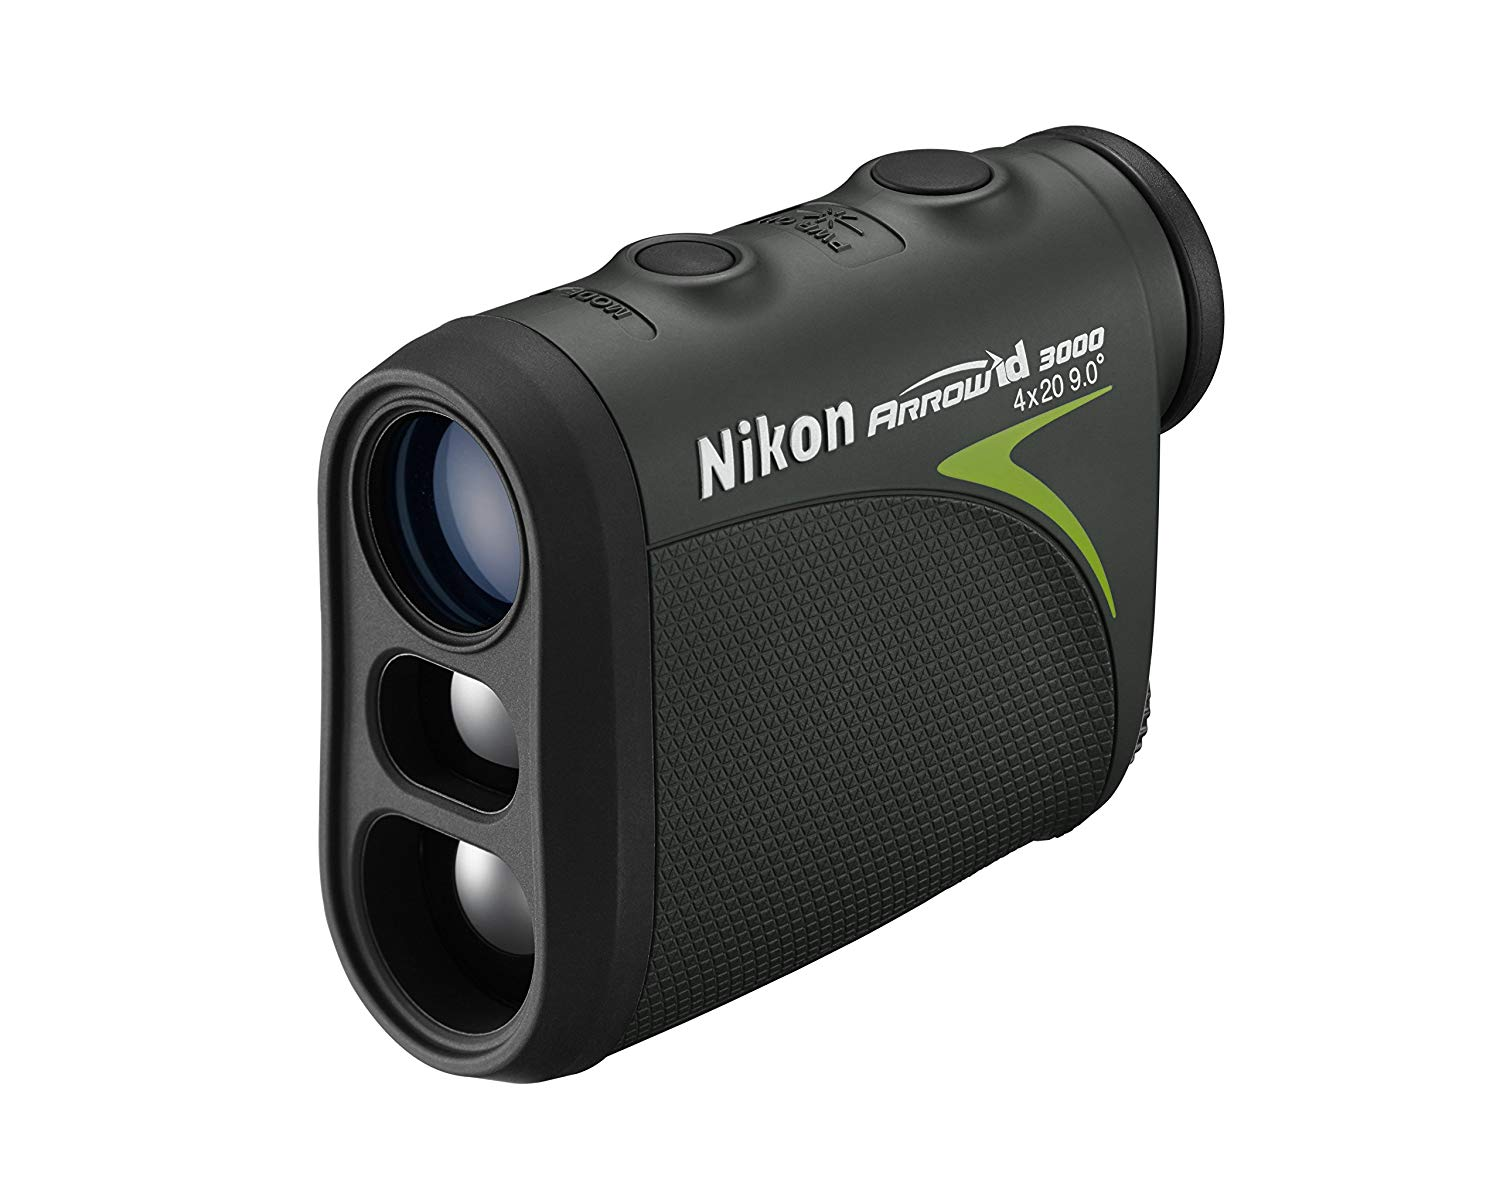 Nikon 16224 Arrow ID 3000 Rangefinder for Bow Hunting